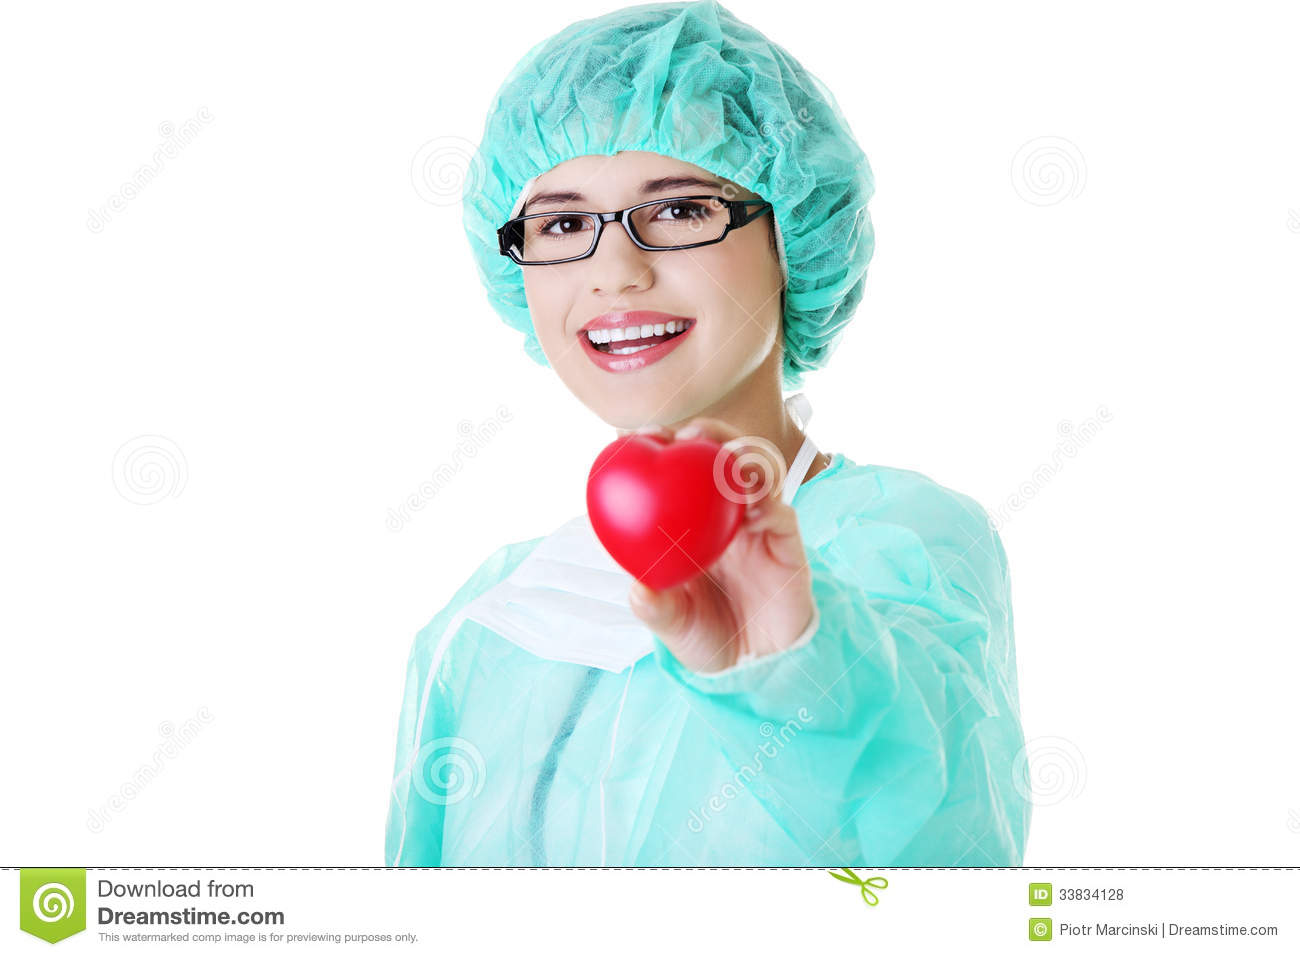 Smiling female doctor or nurse holding red heart